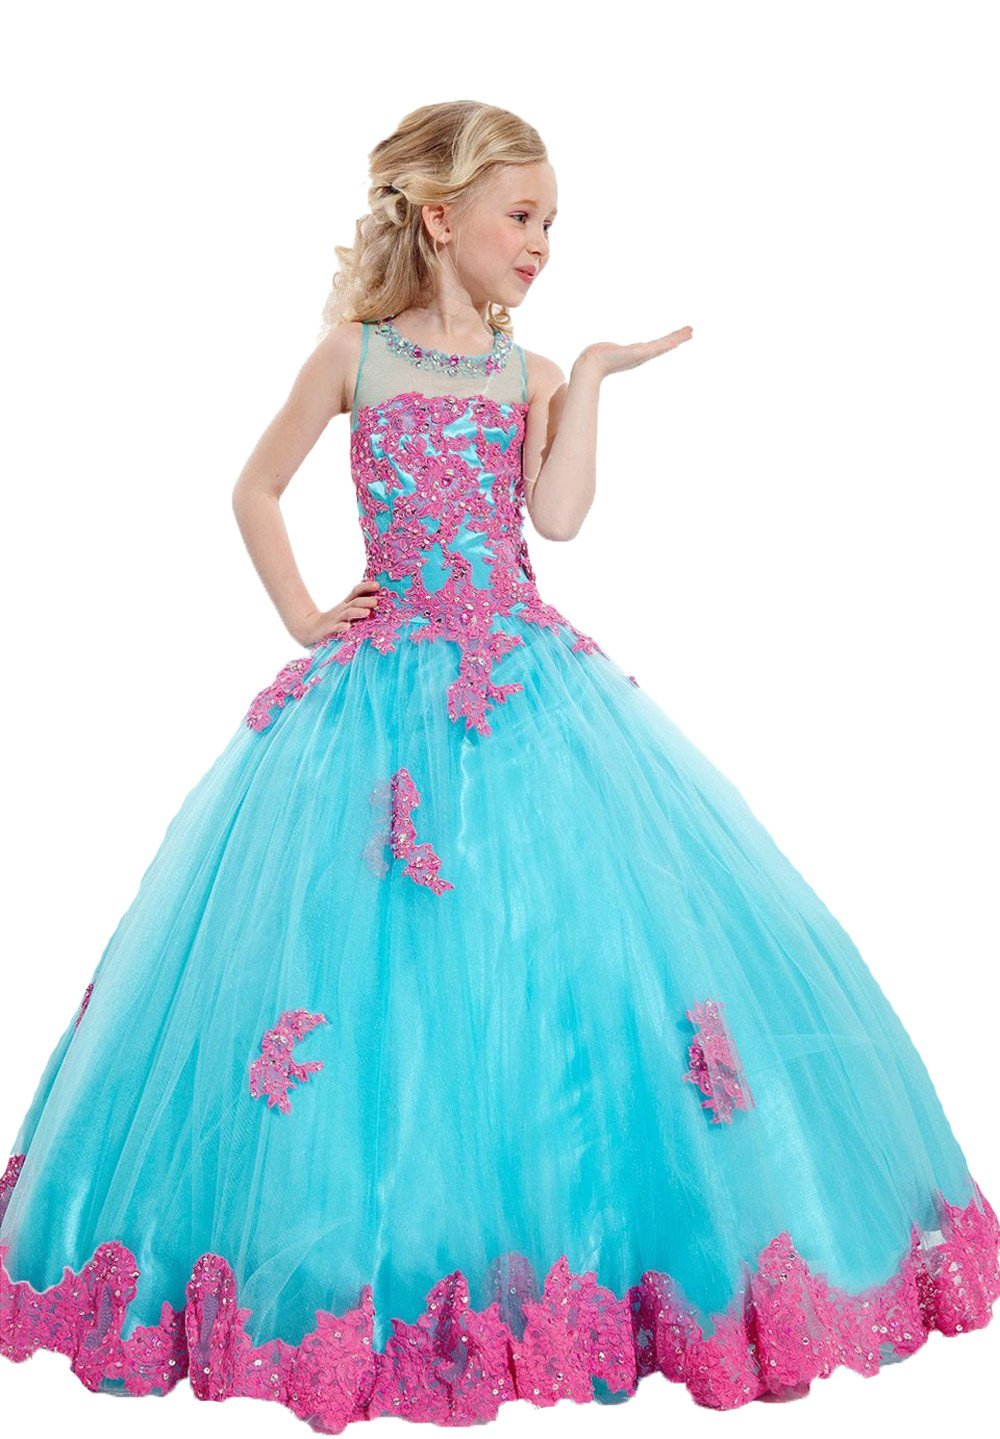 Banfvting Blue Graduation Gown Kids First Communication Dress Floor Length Tutu Gown Appliques Beads (11)